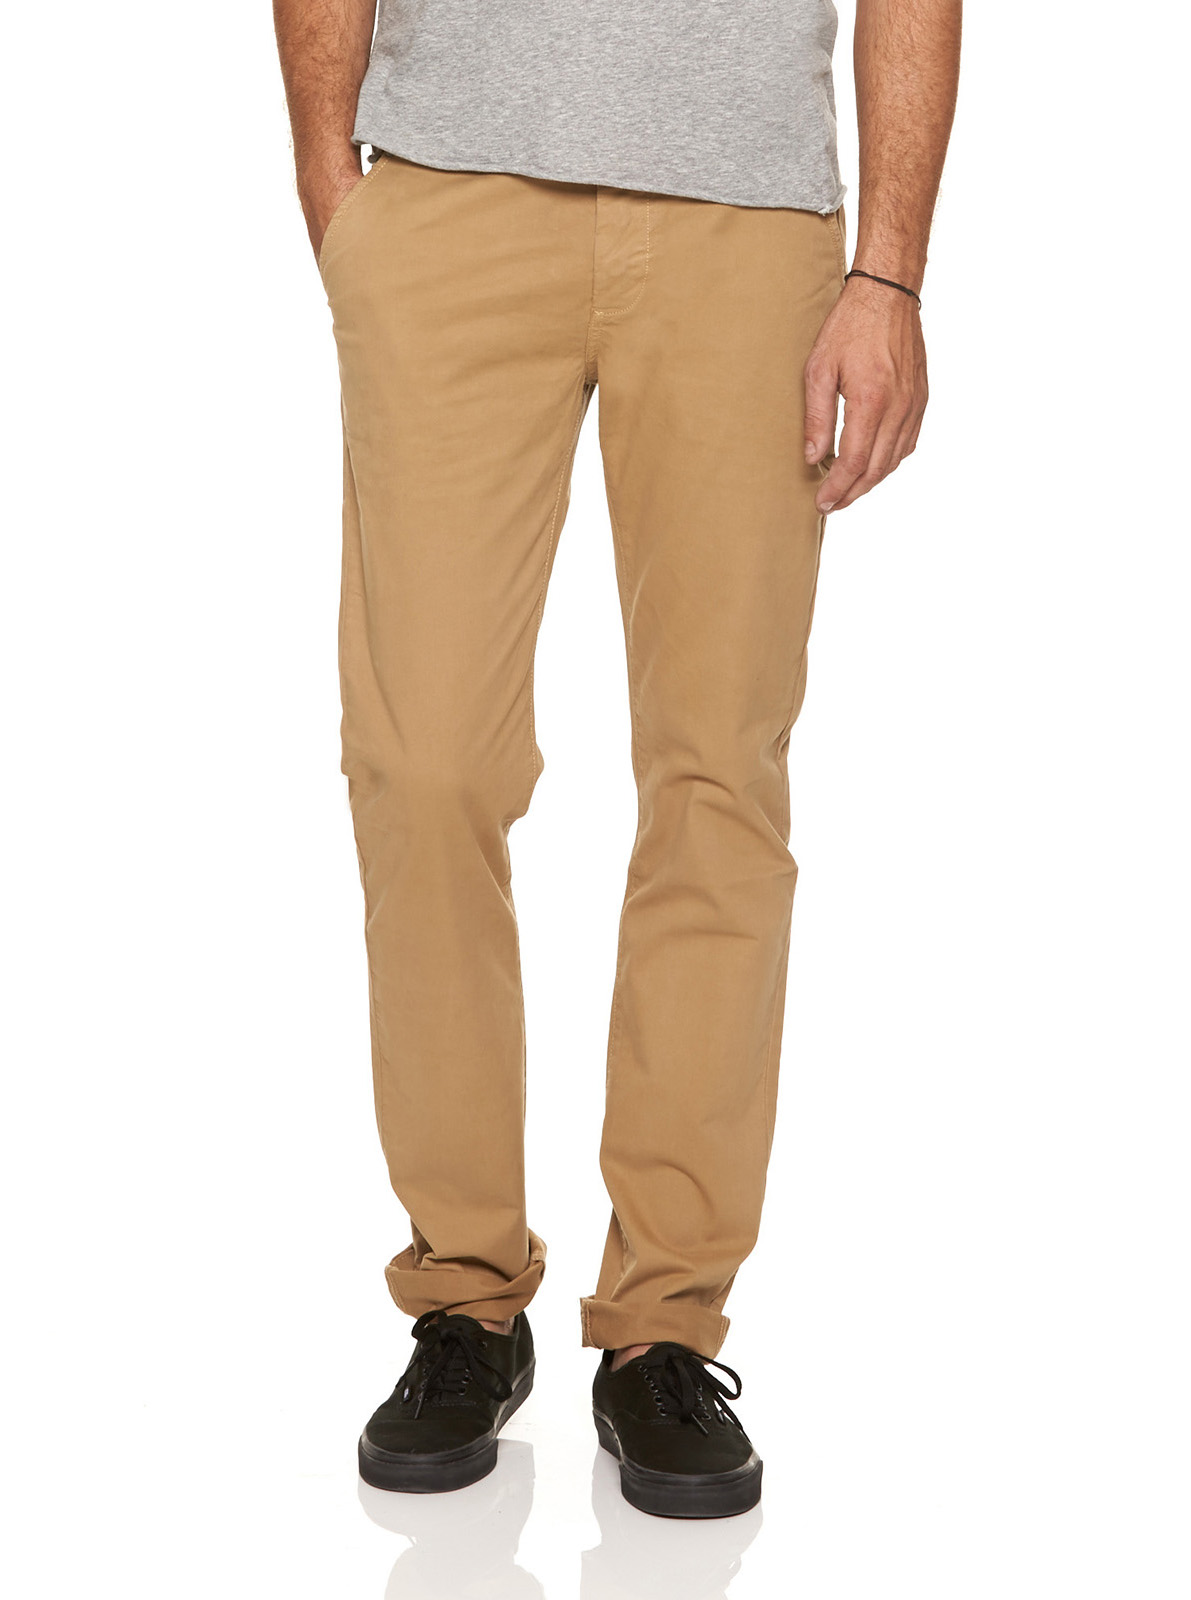 chino jeans riders by lee stretch chino in light camel ... FKBCNYB